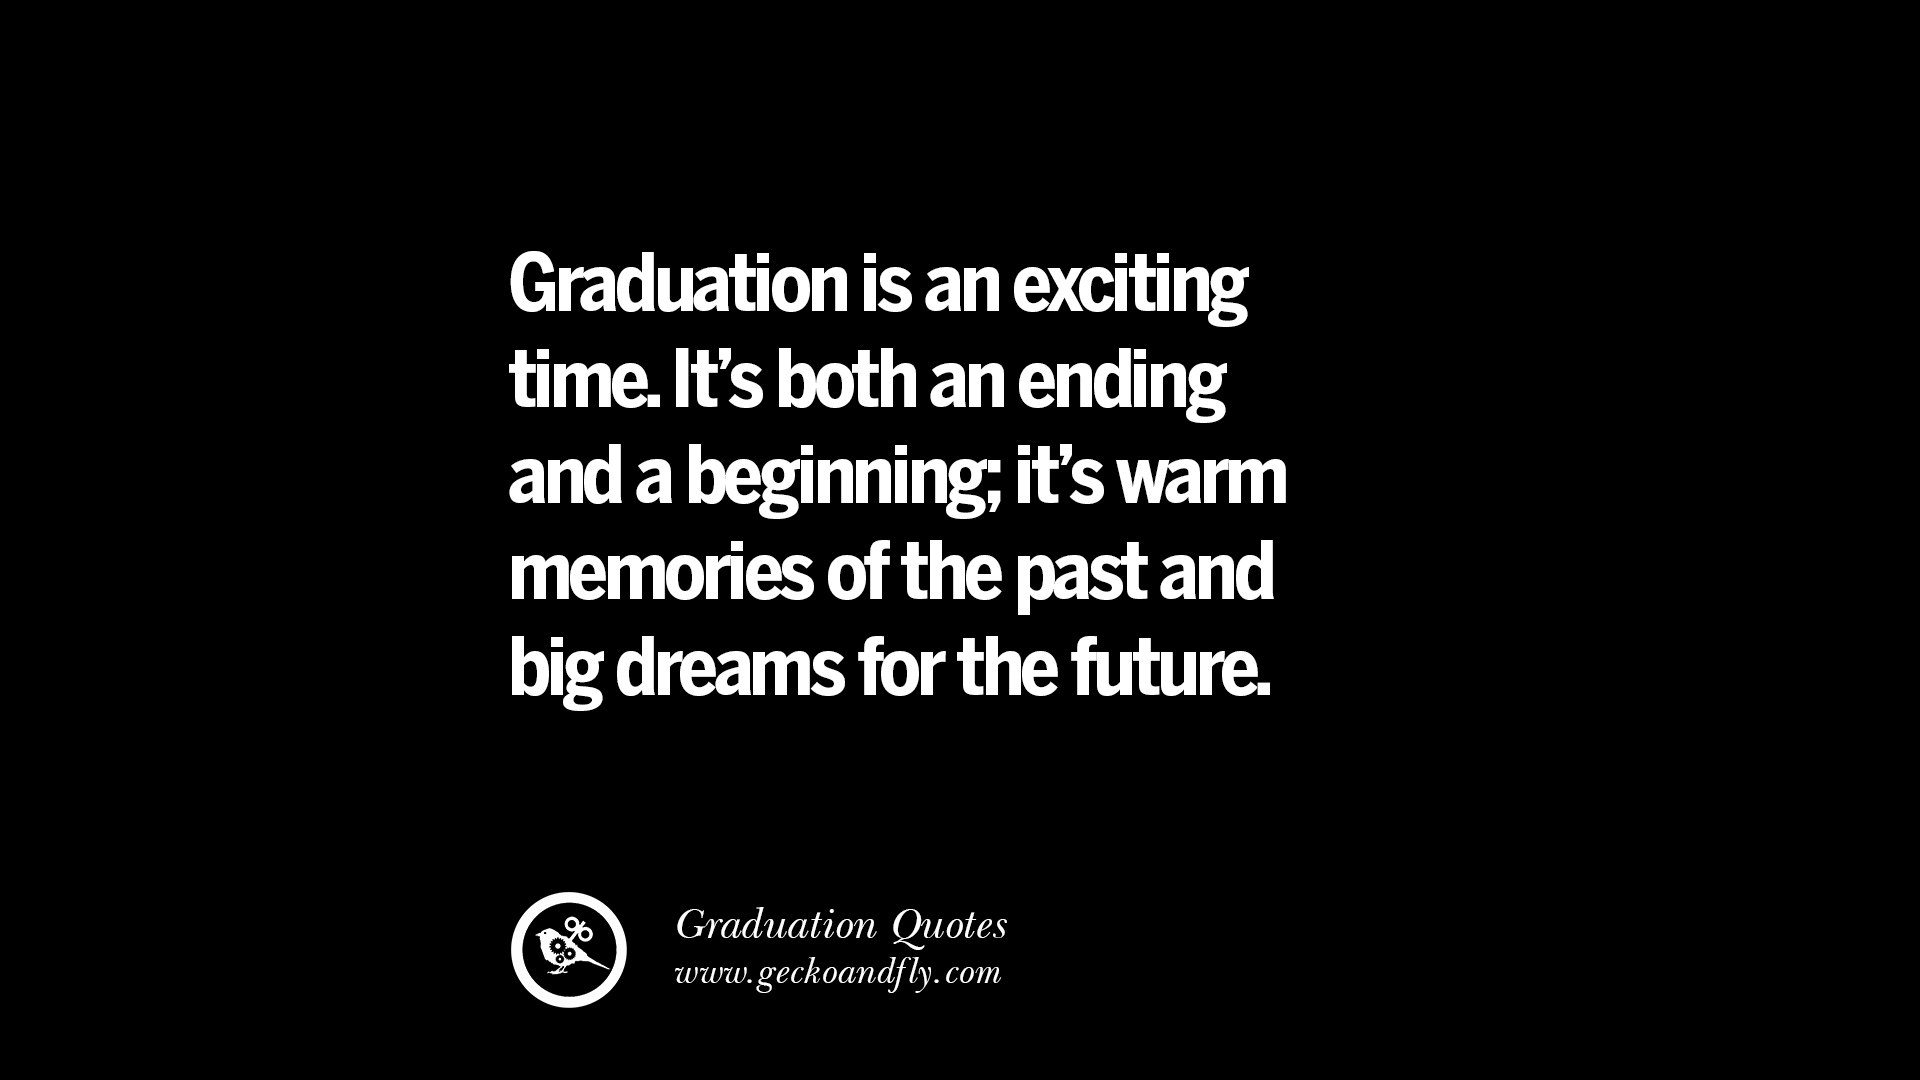 Friendship Memories Quotes Graduation : Inspirational quotes on graduation for high school and